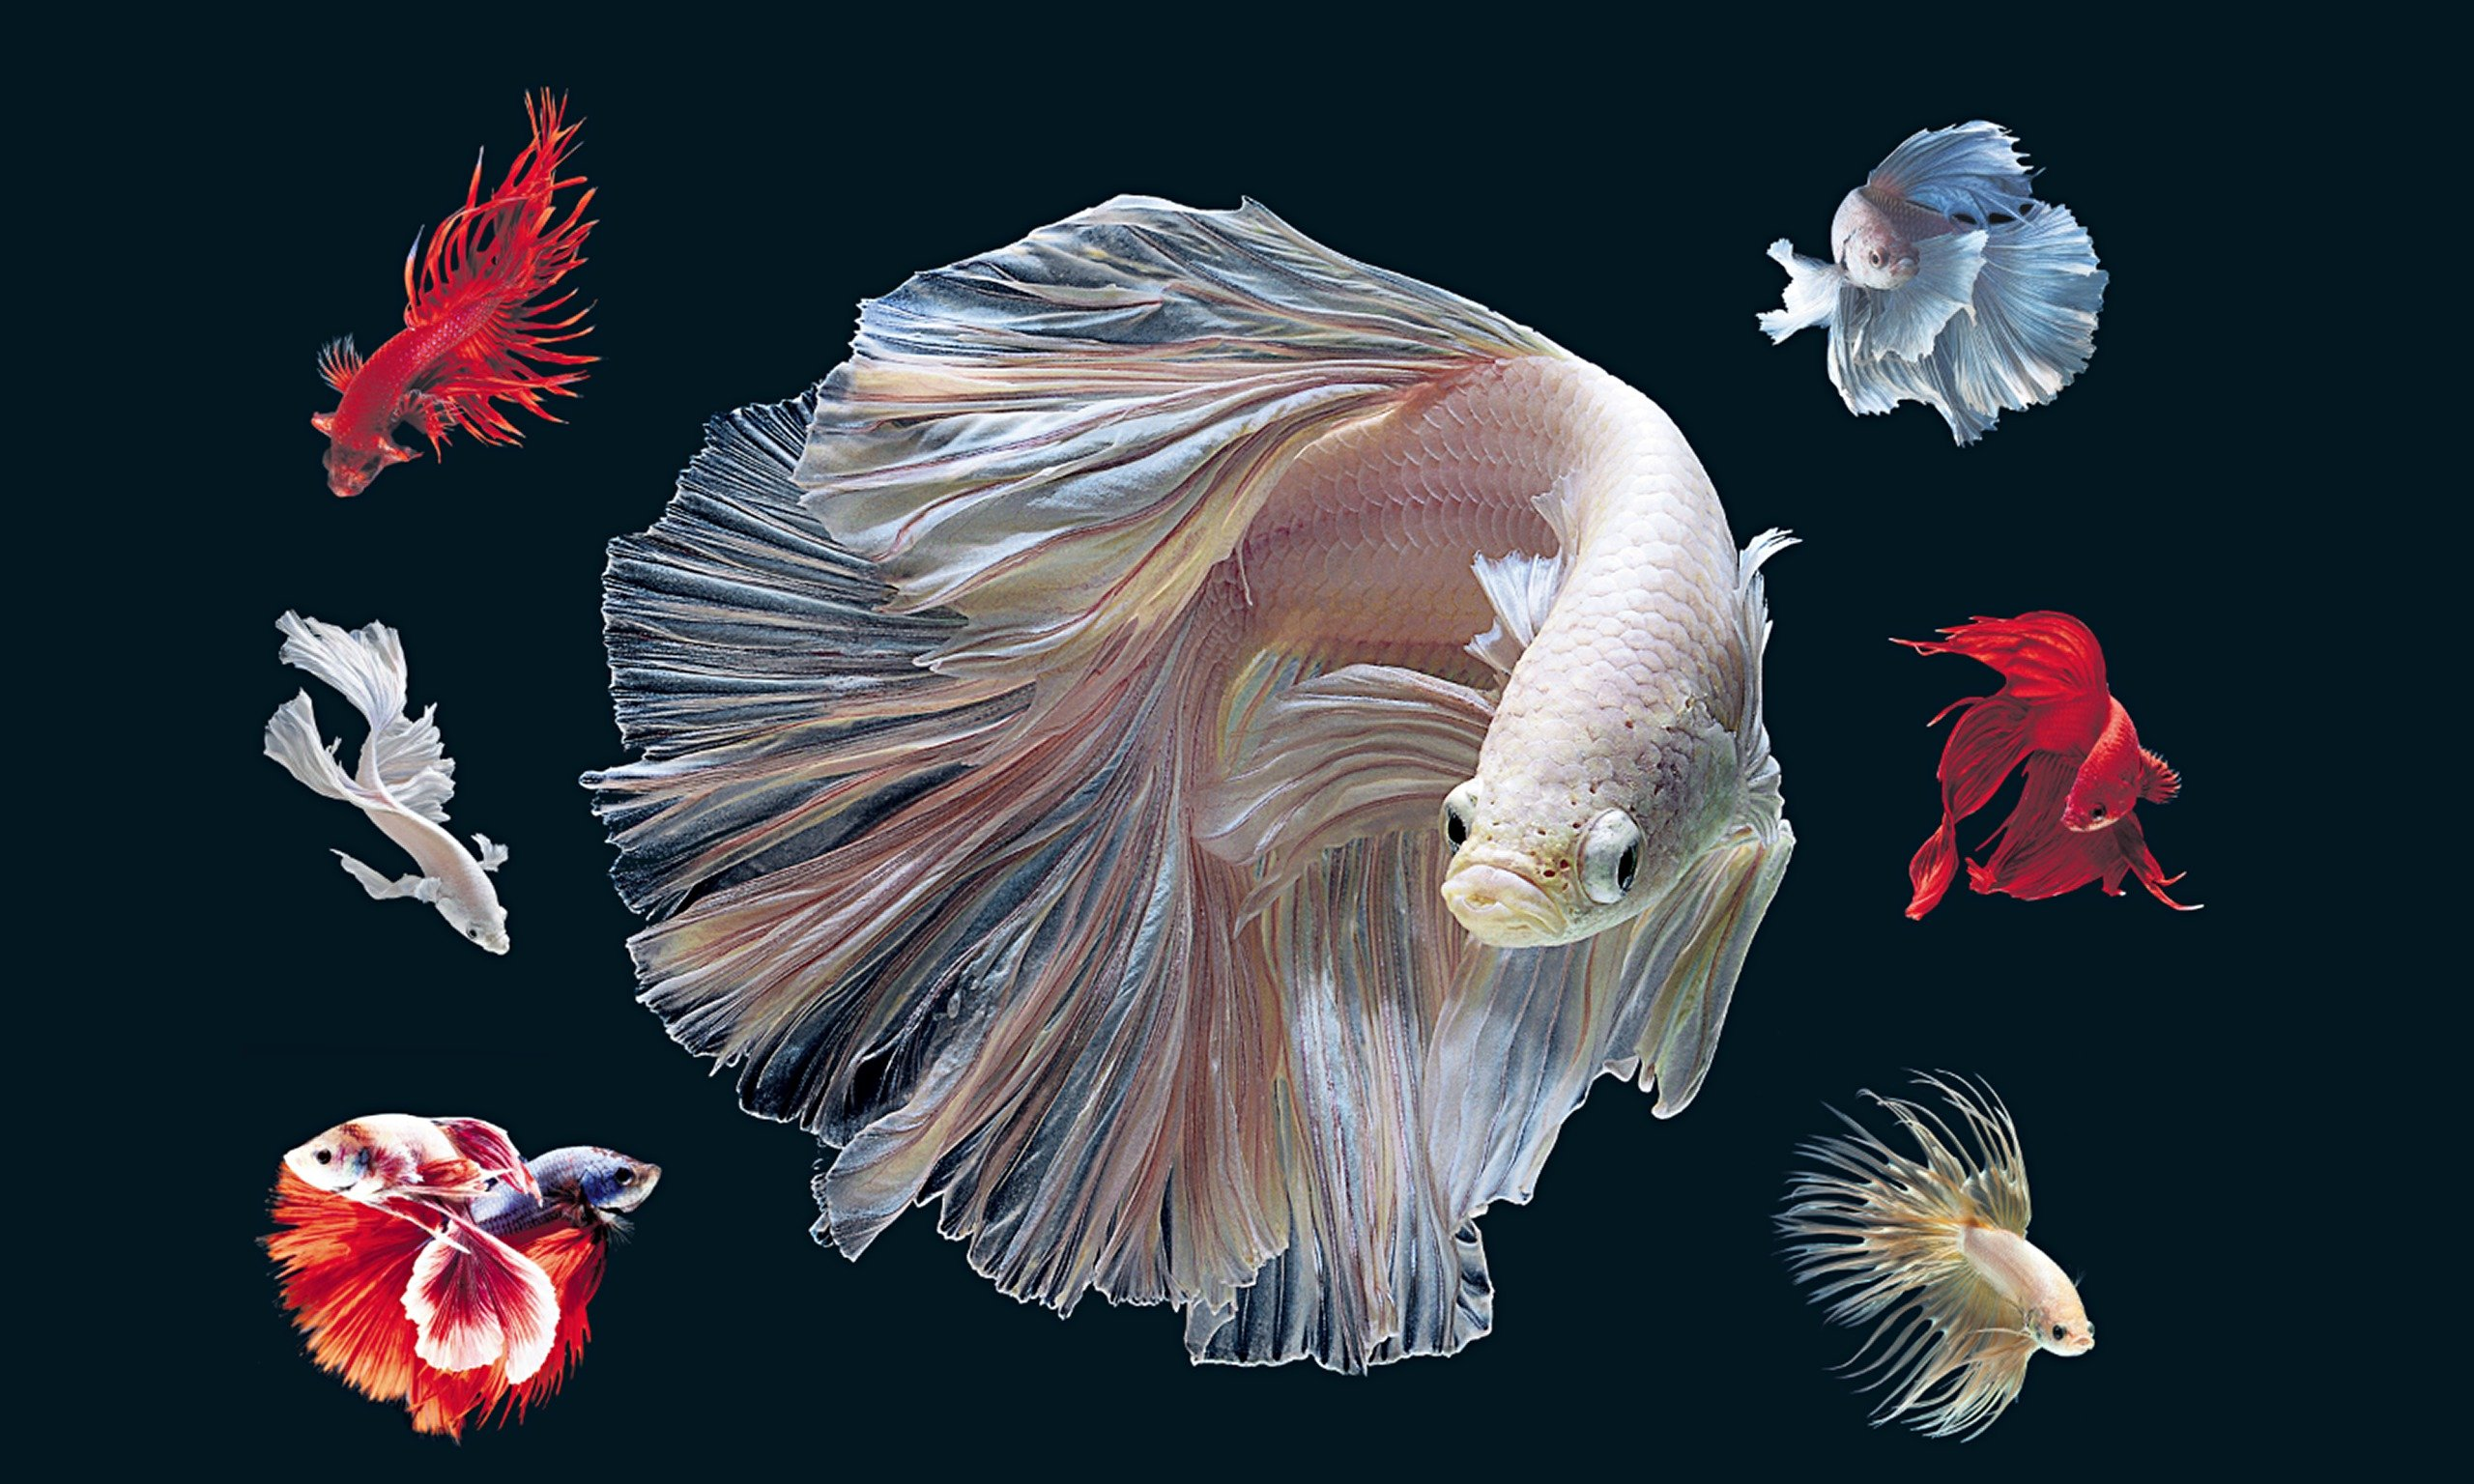 [48+] Betta Fish Wallpaper On WallpaperSafari